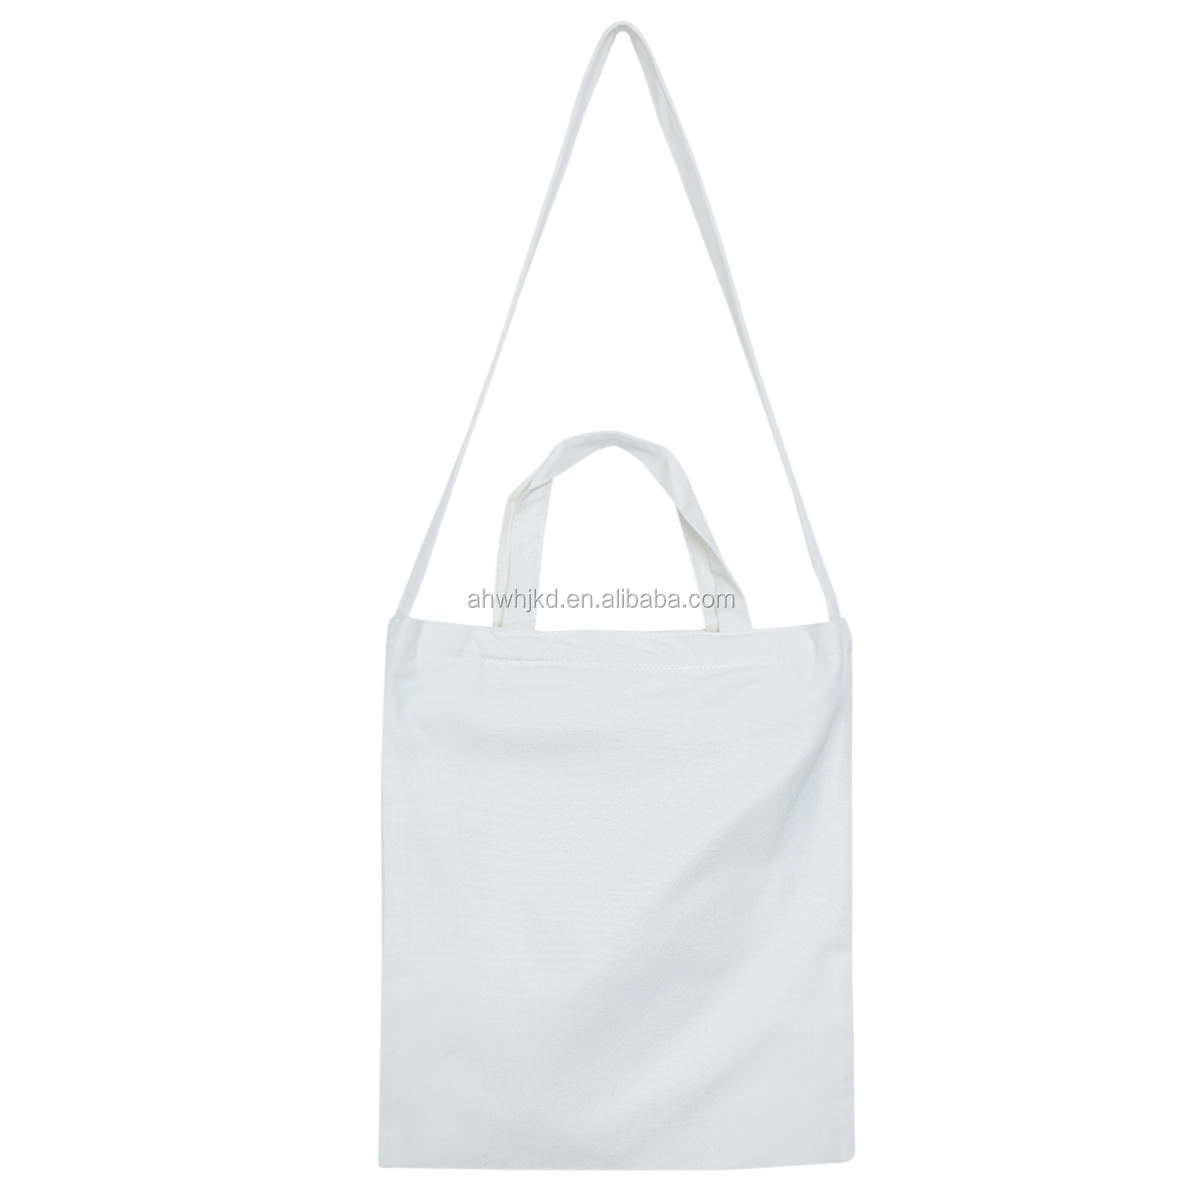 Extra Large Travel Tote Bags  4d4c57d9fd1d0